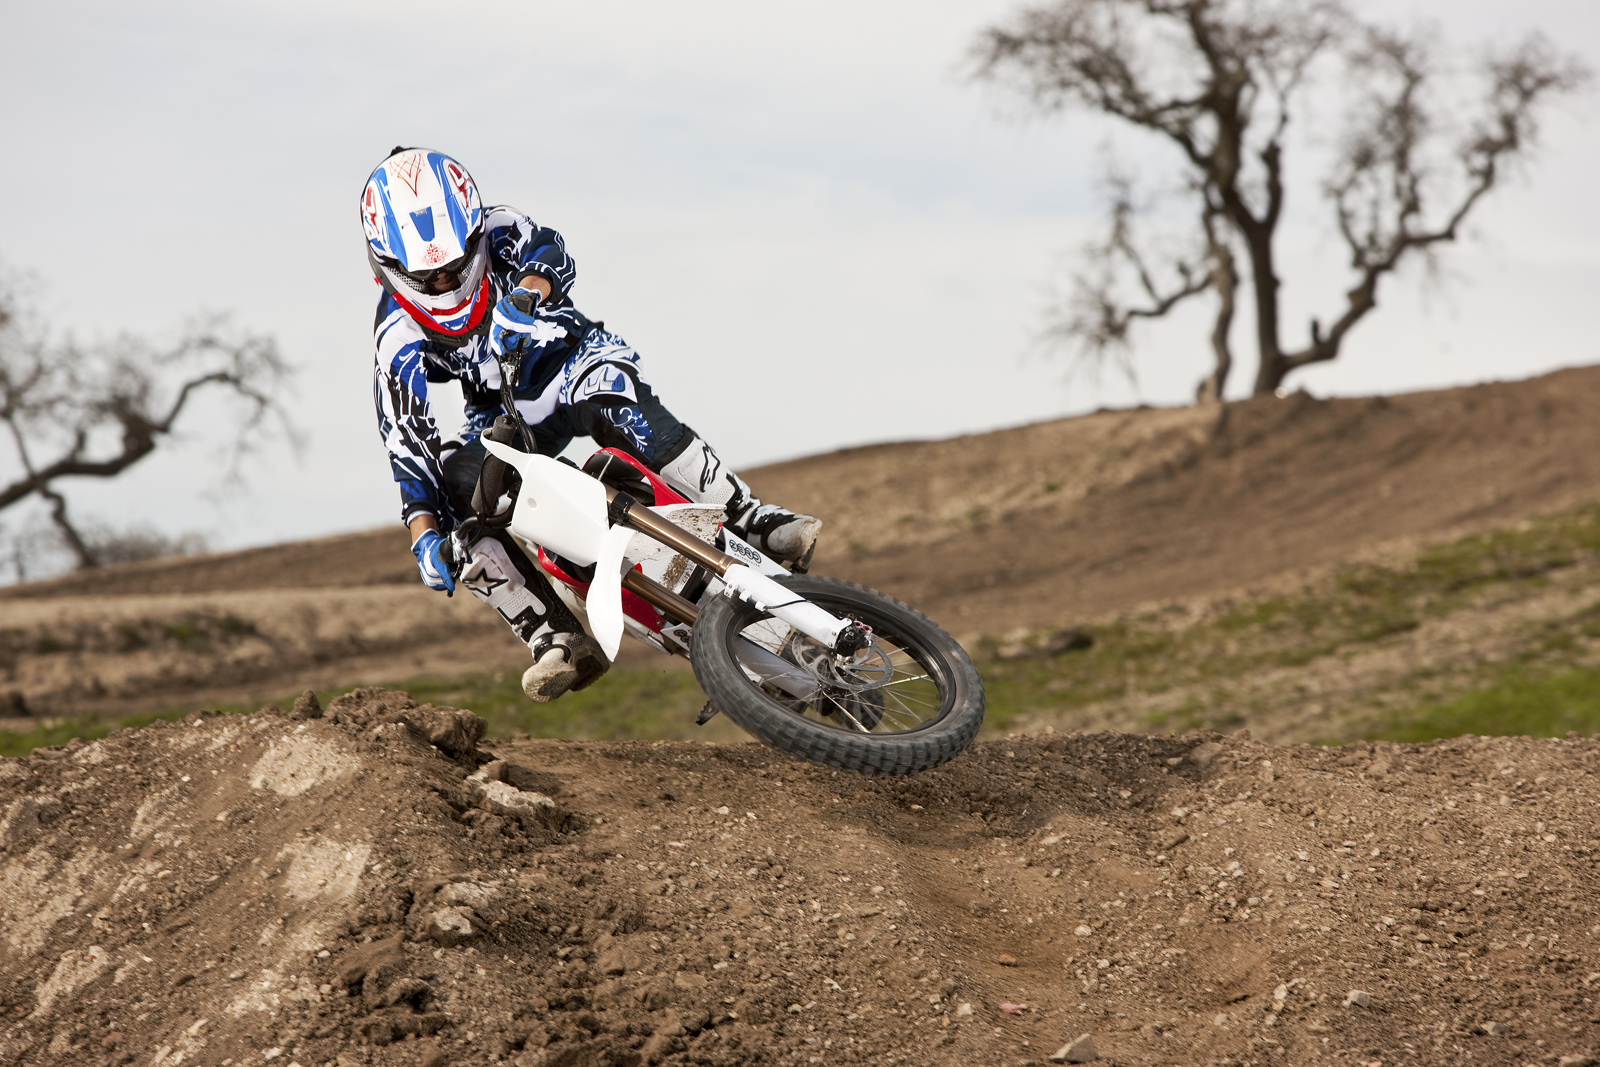 '.2010 Zero MX Electric Motorcycle: Zaca Station - Red Scrub Lean Left.'